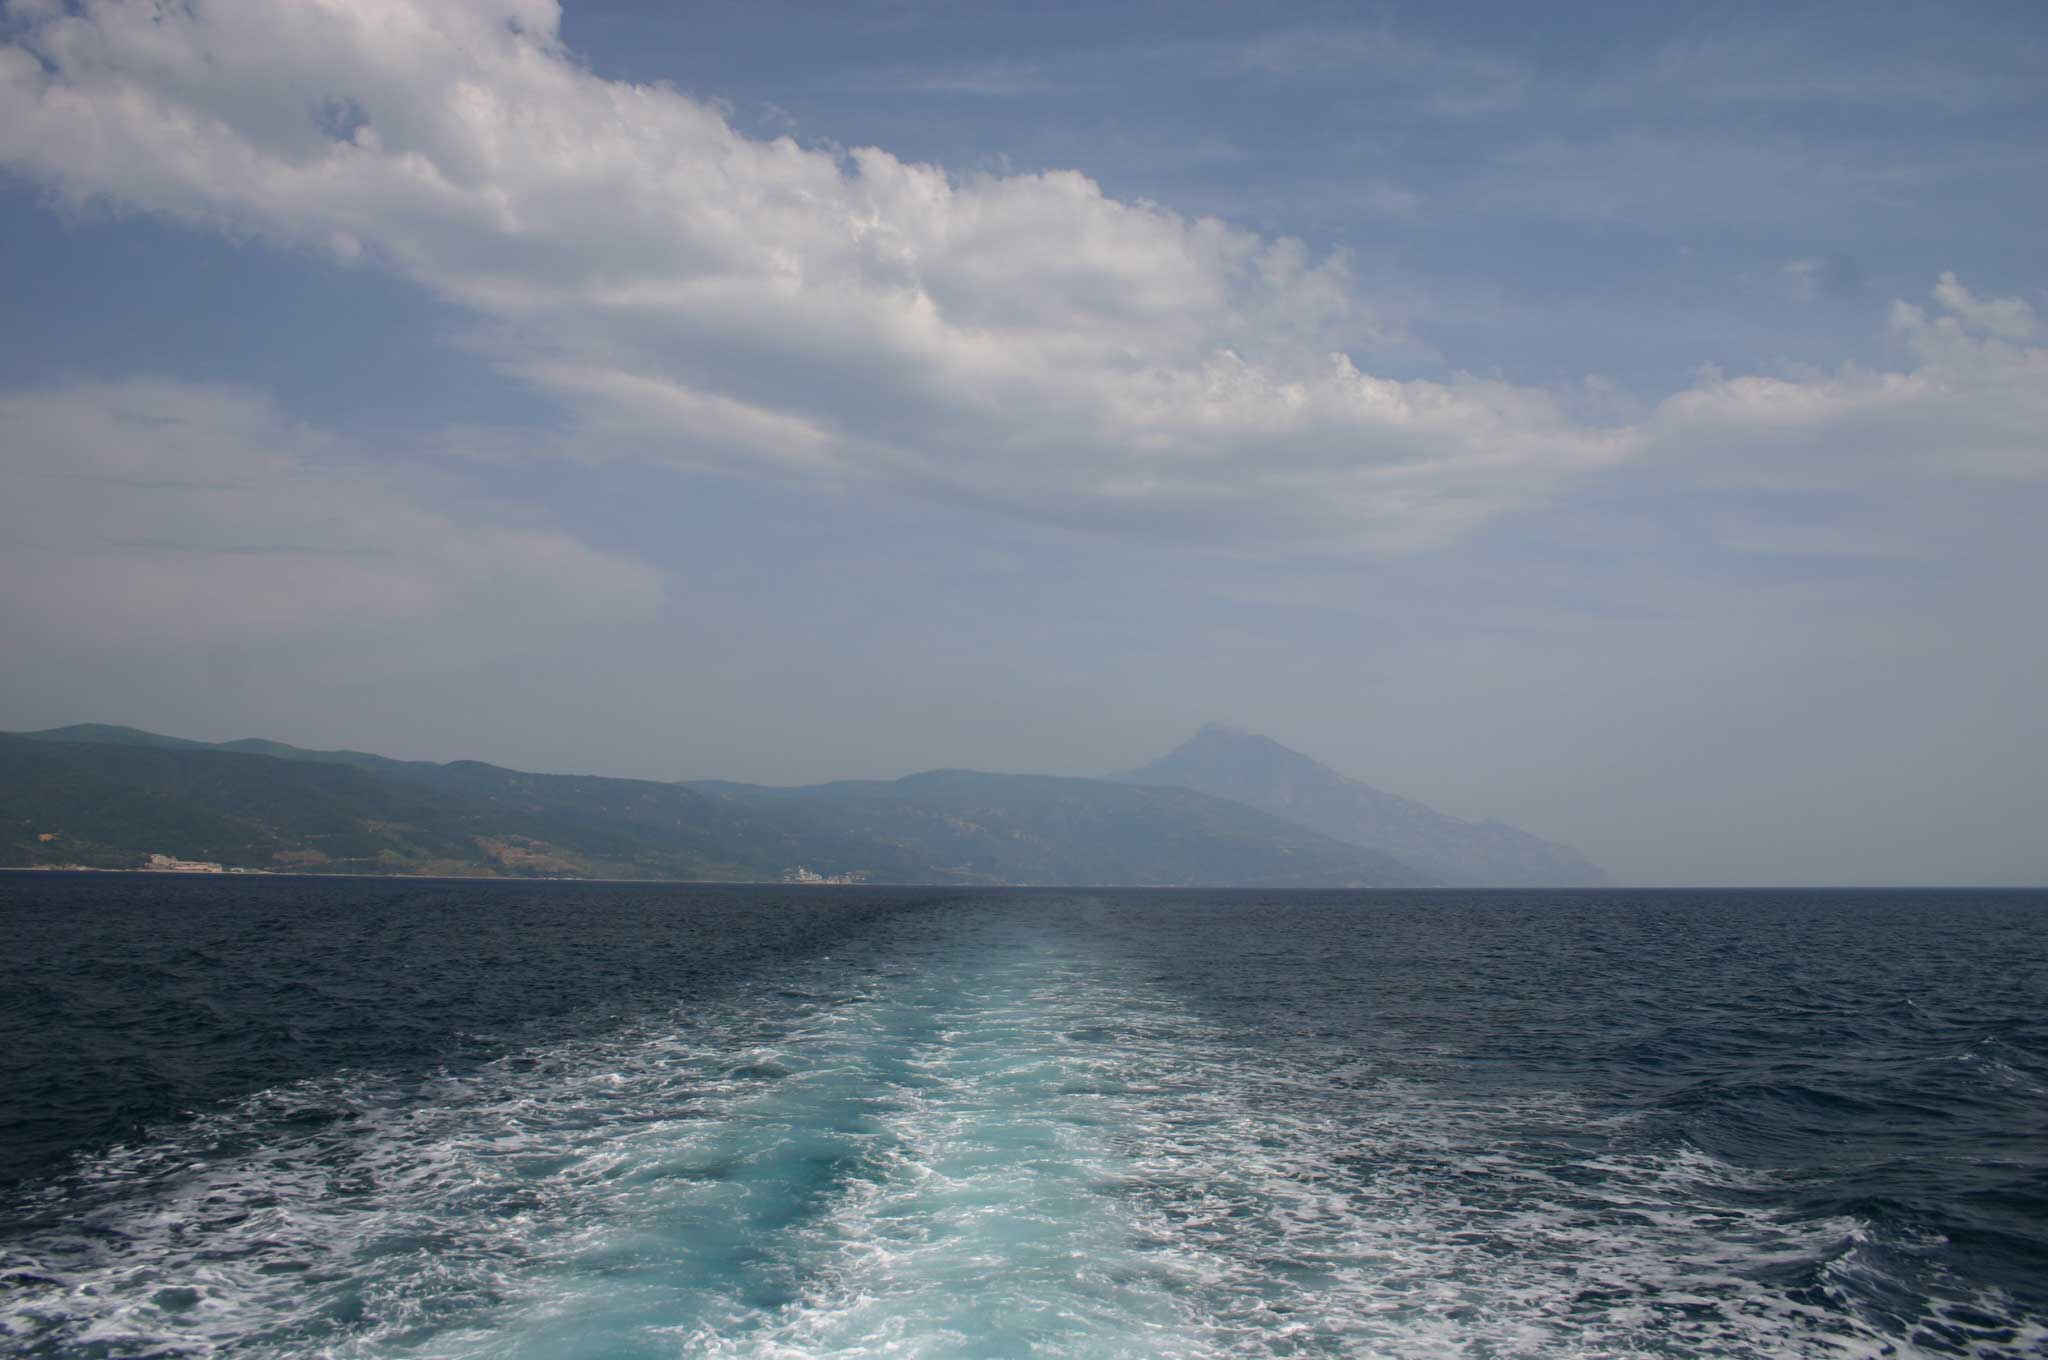 Mount Athos: Mt Athos - Back to Athos, From the ferry - © William Mackesy